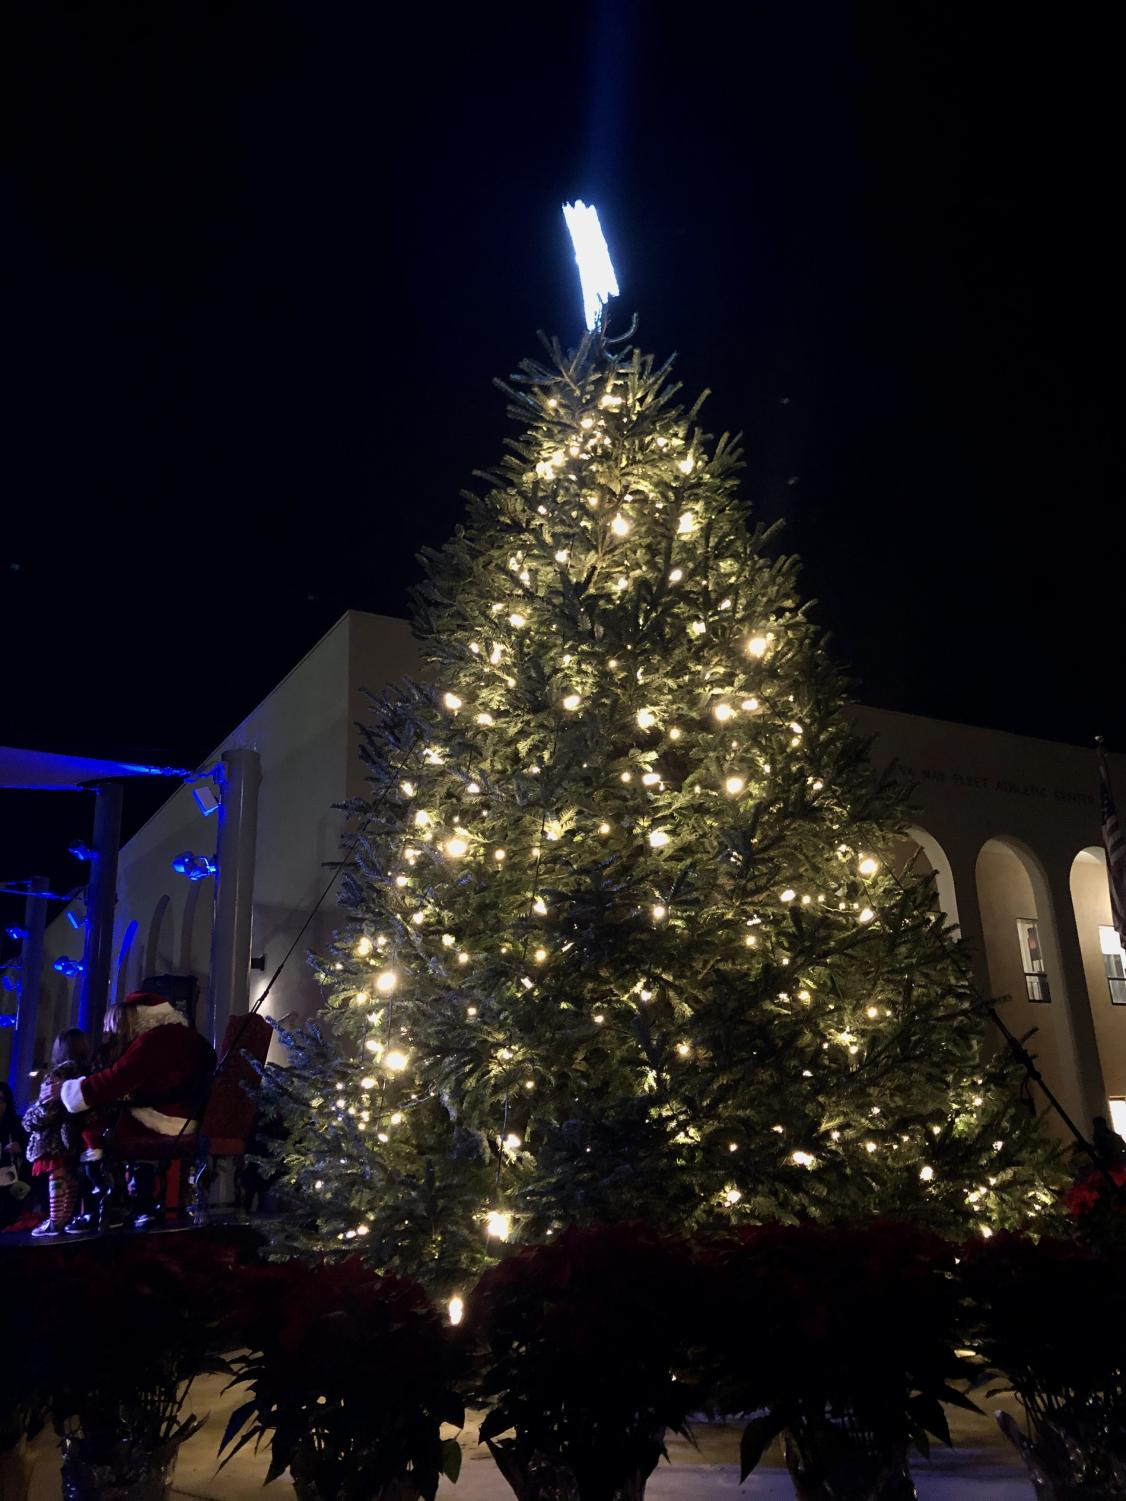 The Bishop's Christmas tree was lit on December 5th this year, appropriately after Thanksgiving.